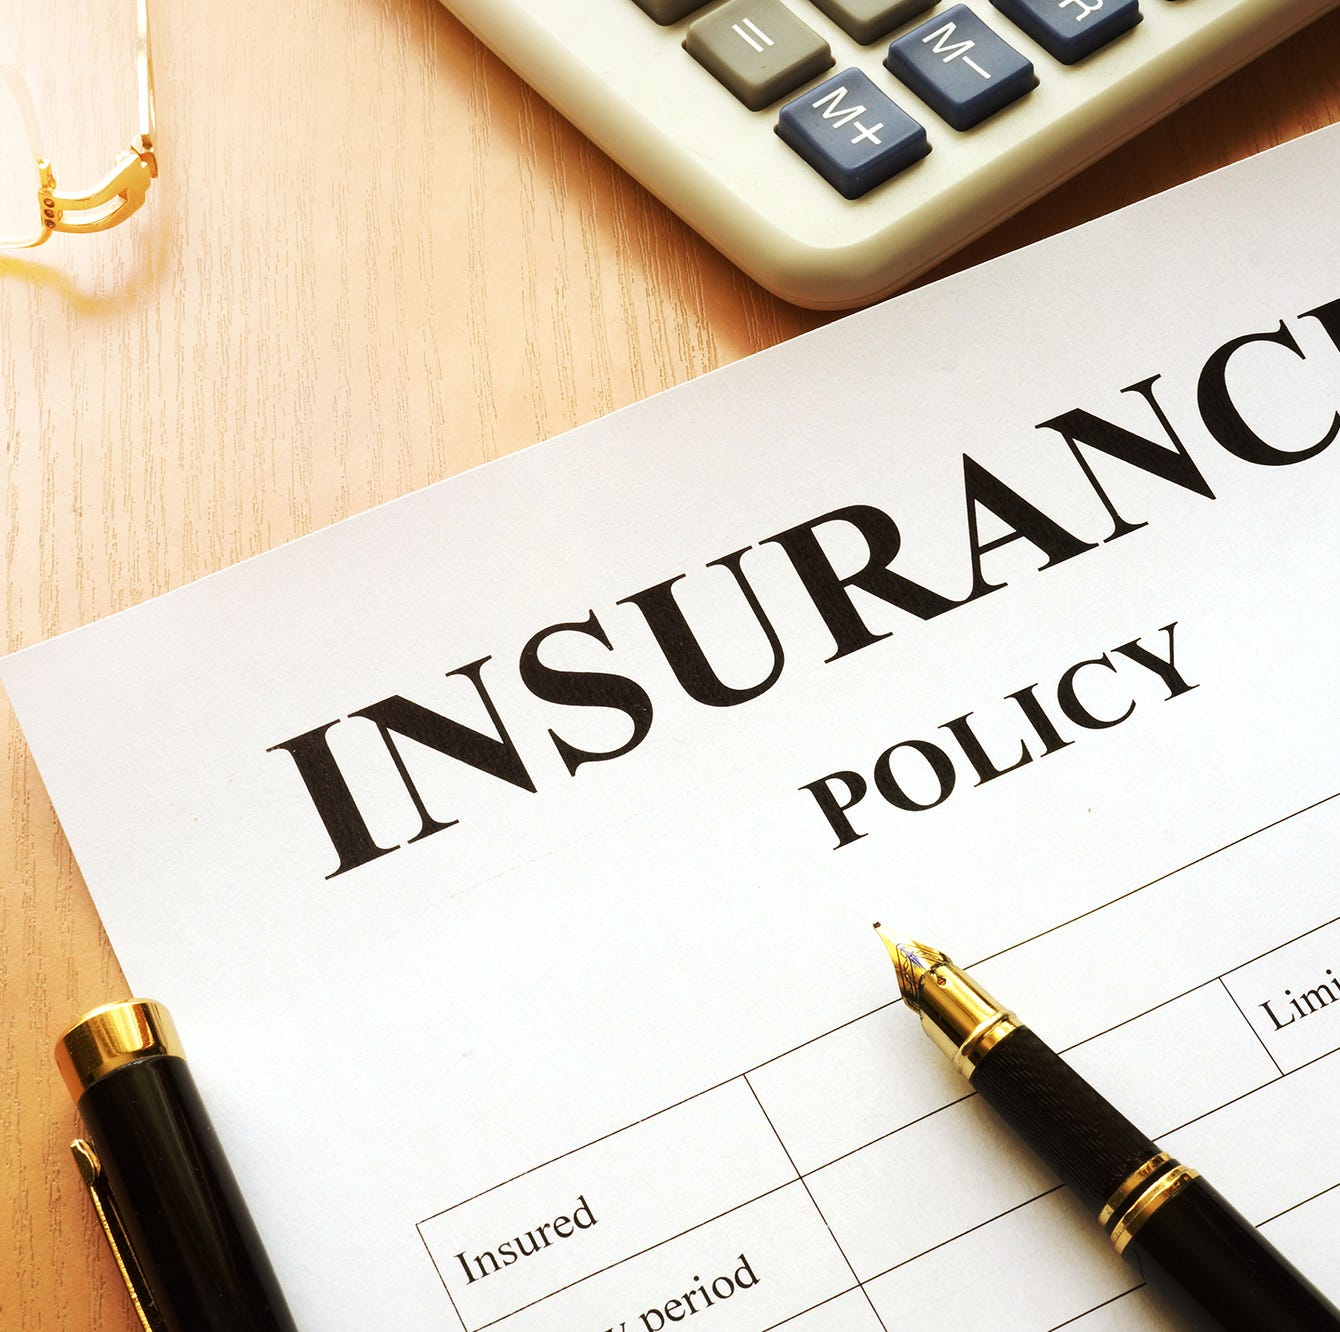 Understanding Mortgage Insurance: What's the Difference Between MIP and PMI?